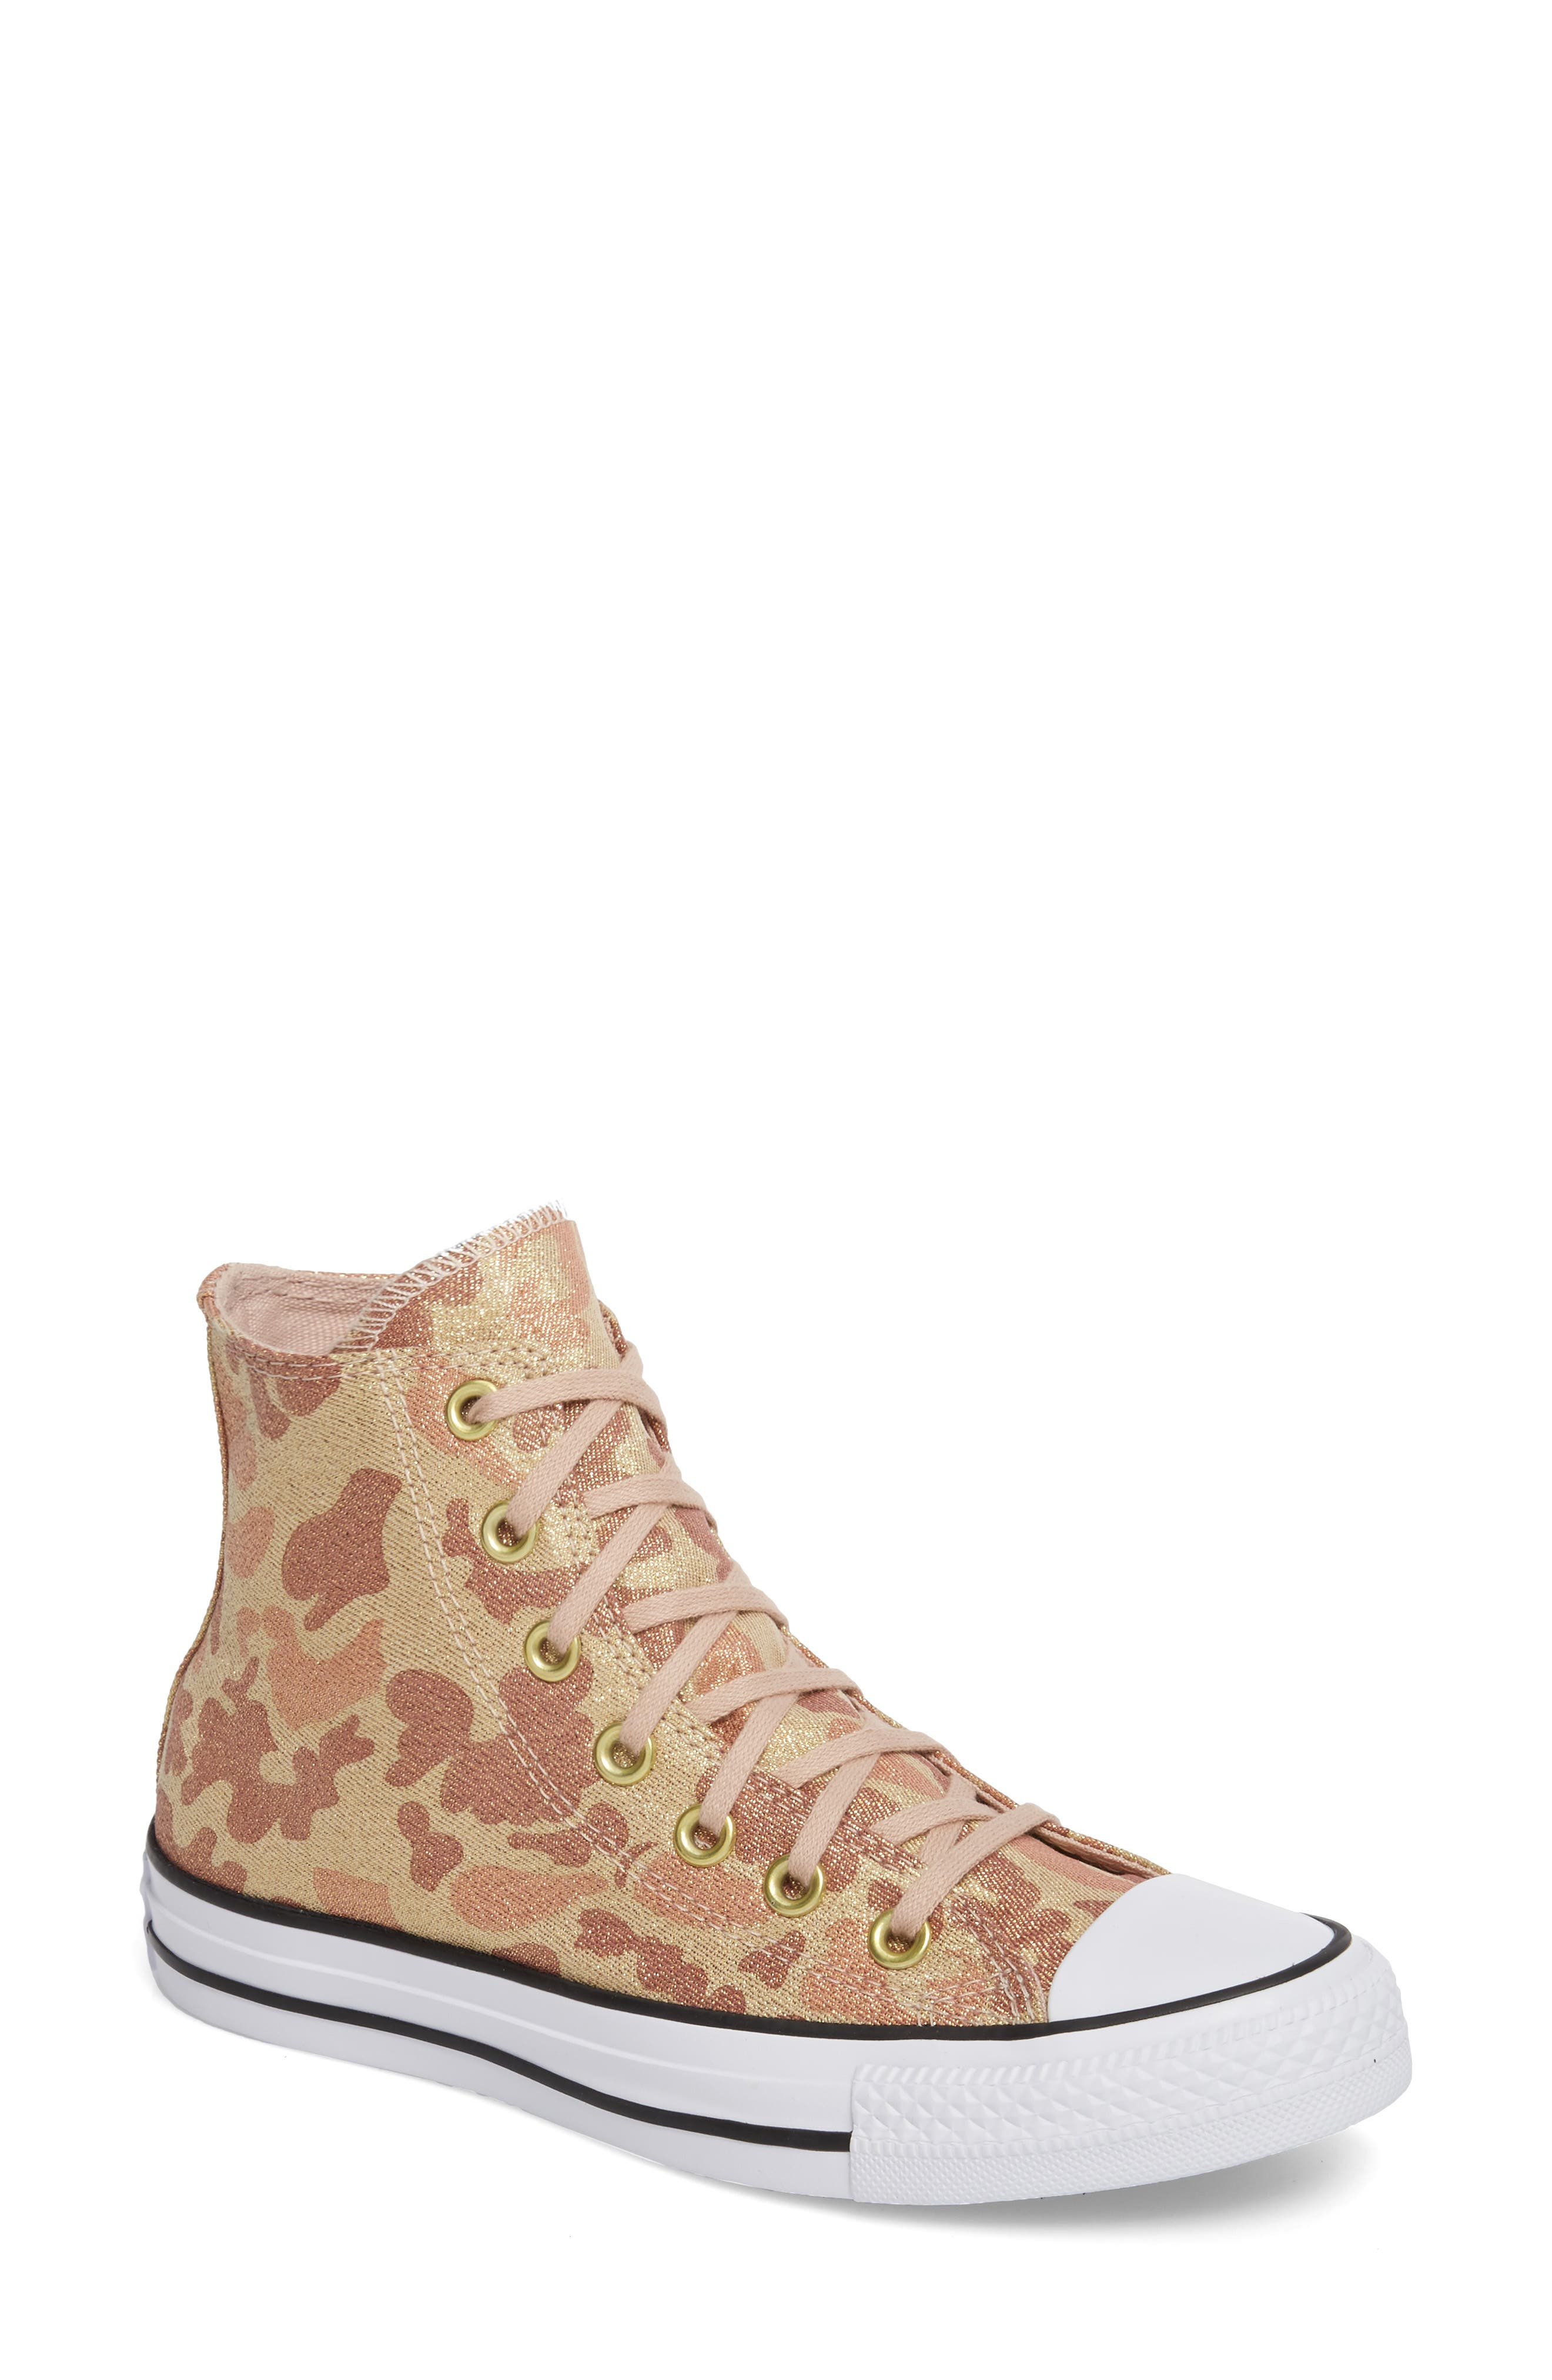 Chuck Taylor<sup>®</sup> All Star<sup>®</sup> High Top Sneaker,                             Main thumbnail 1, color,                             Particle Beige